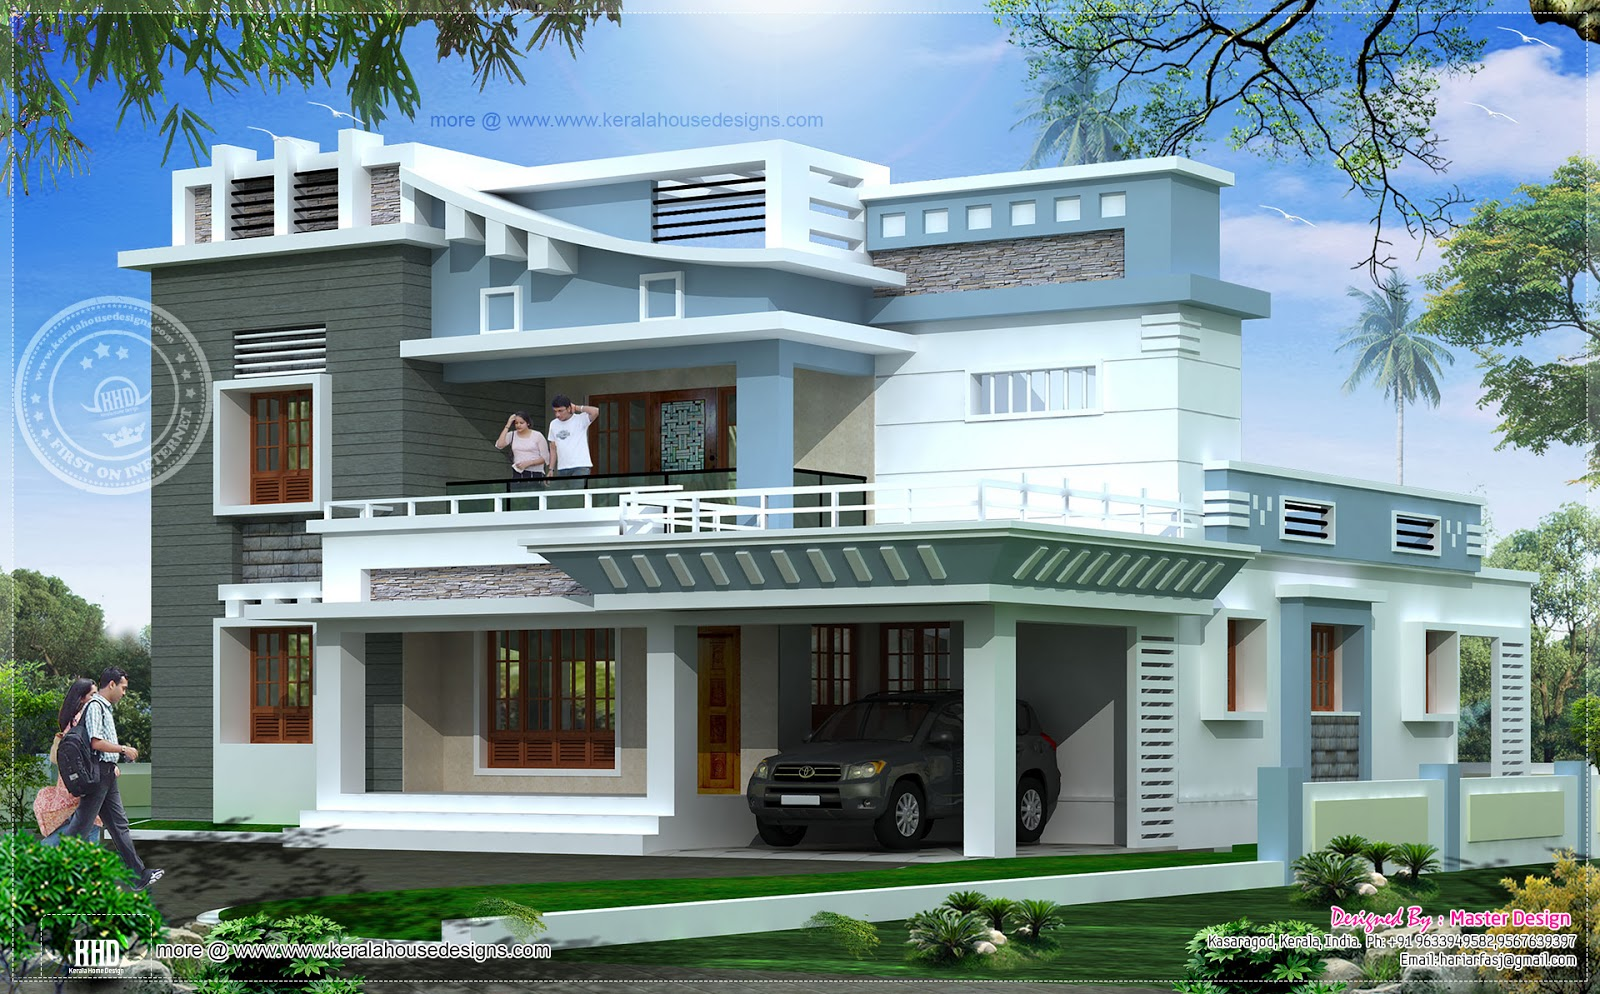 2547 square feet exterior home elevation house design plans for Indian home design photos exterior